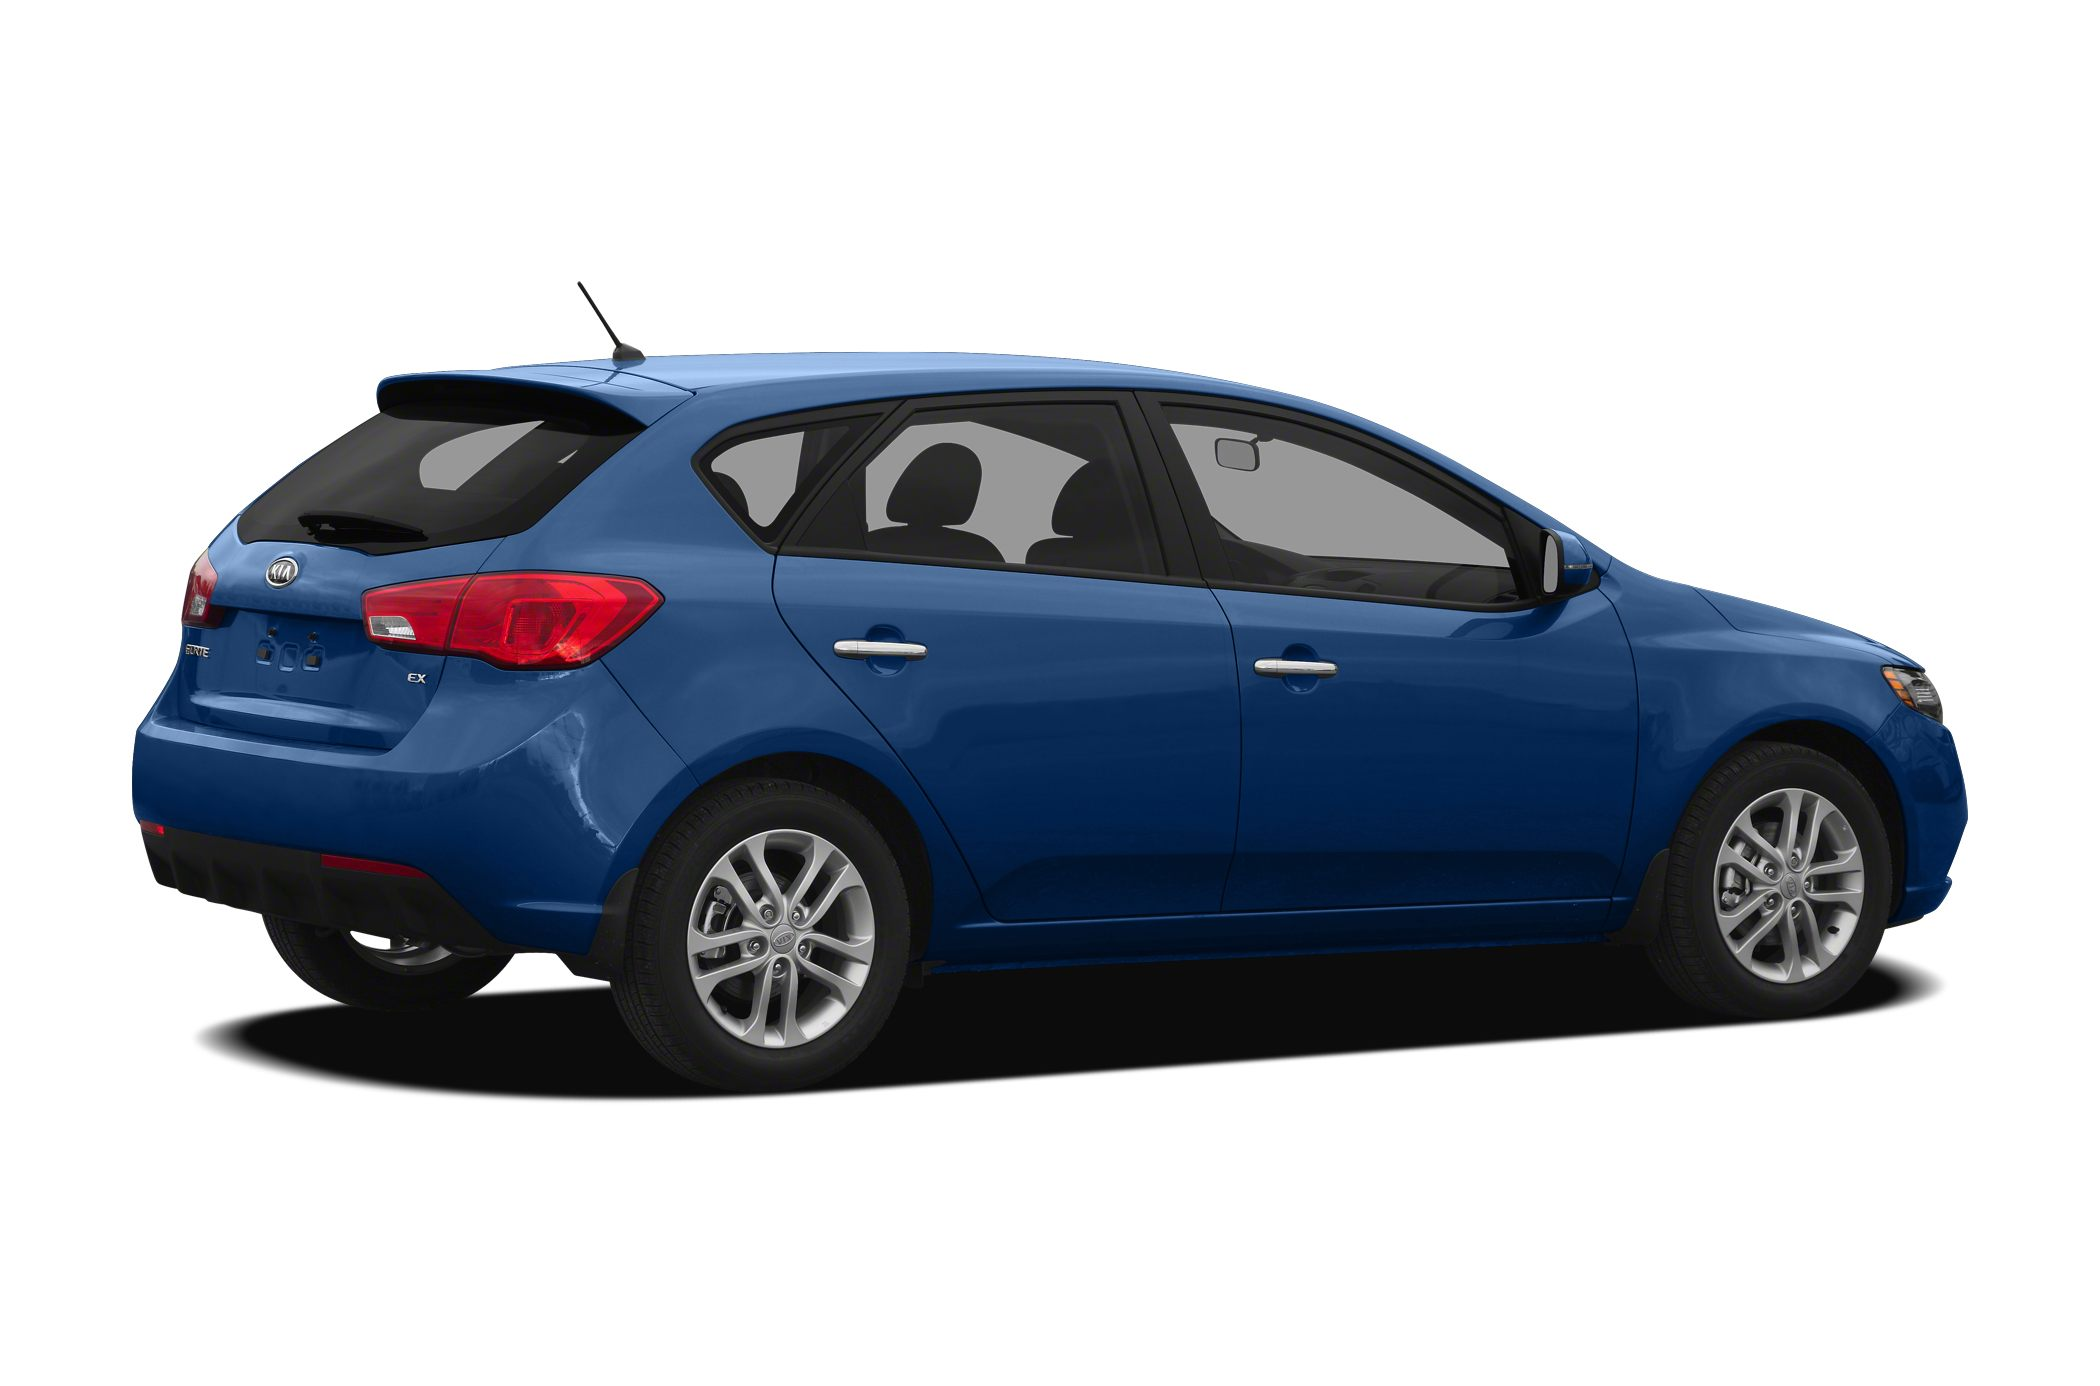 2011 Kia Forte SX 3-DAY EXCHANGE Miles 1Color NOT SPECIFIED Stock P2255 VIN KNAFW5A32B539